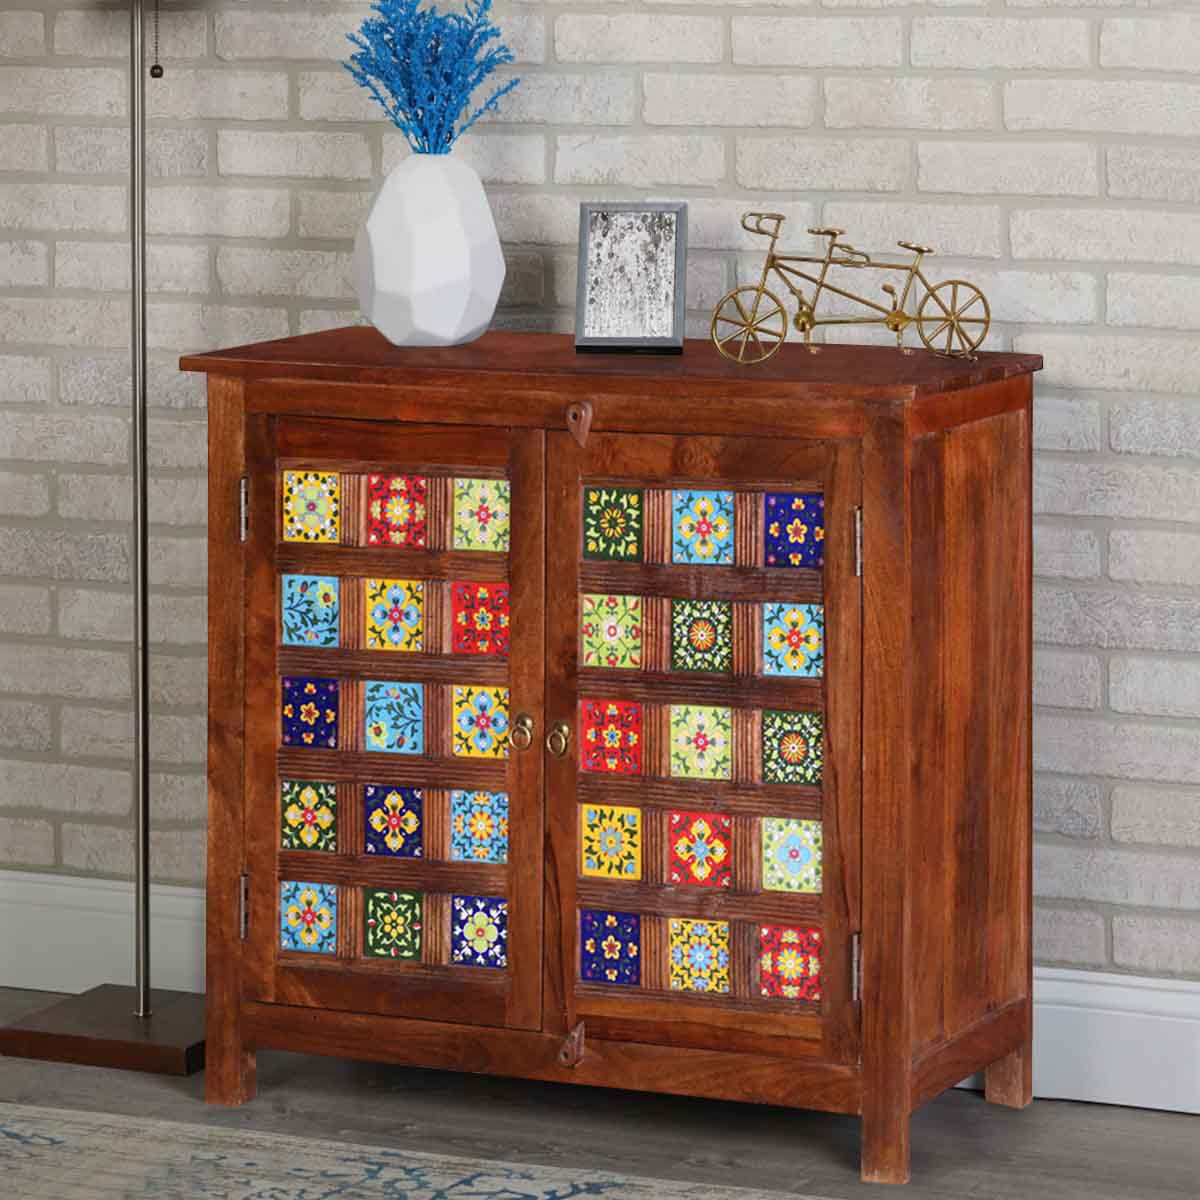 Mallorca Floral Tiled Handcrafted Solid Wood Storage Cabinet